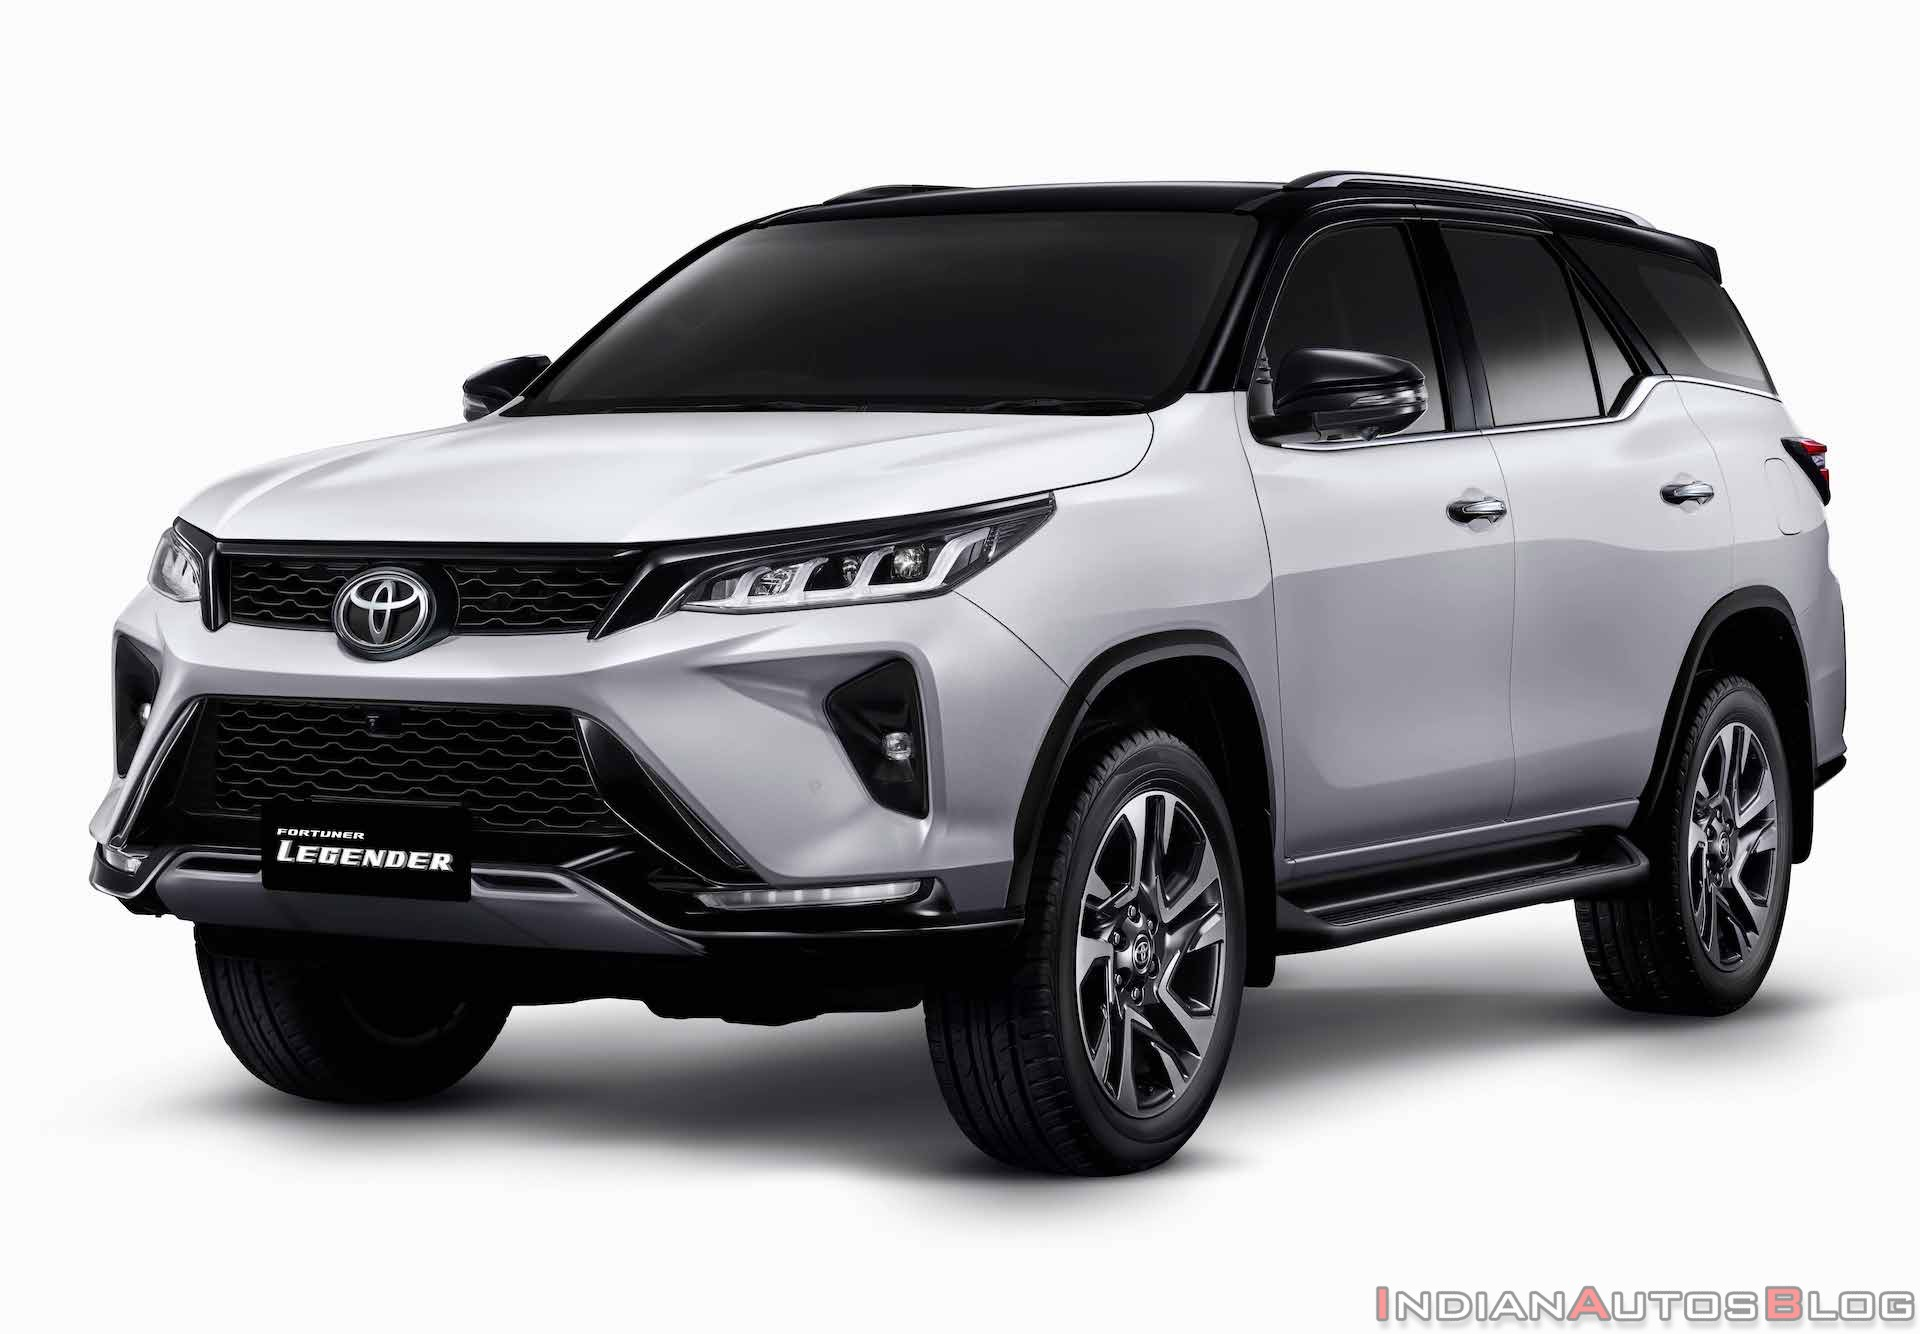 toyota-fortuner-legender-front-three-quarters-d785.jpg